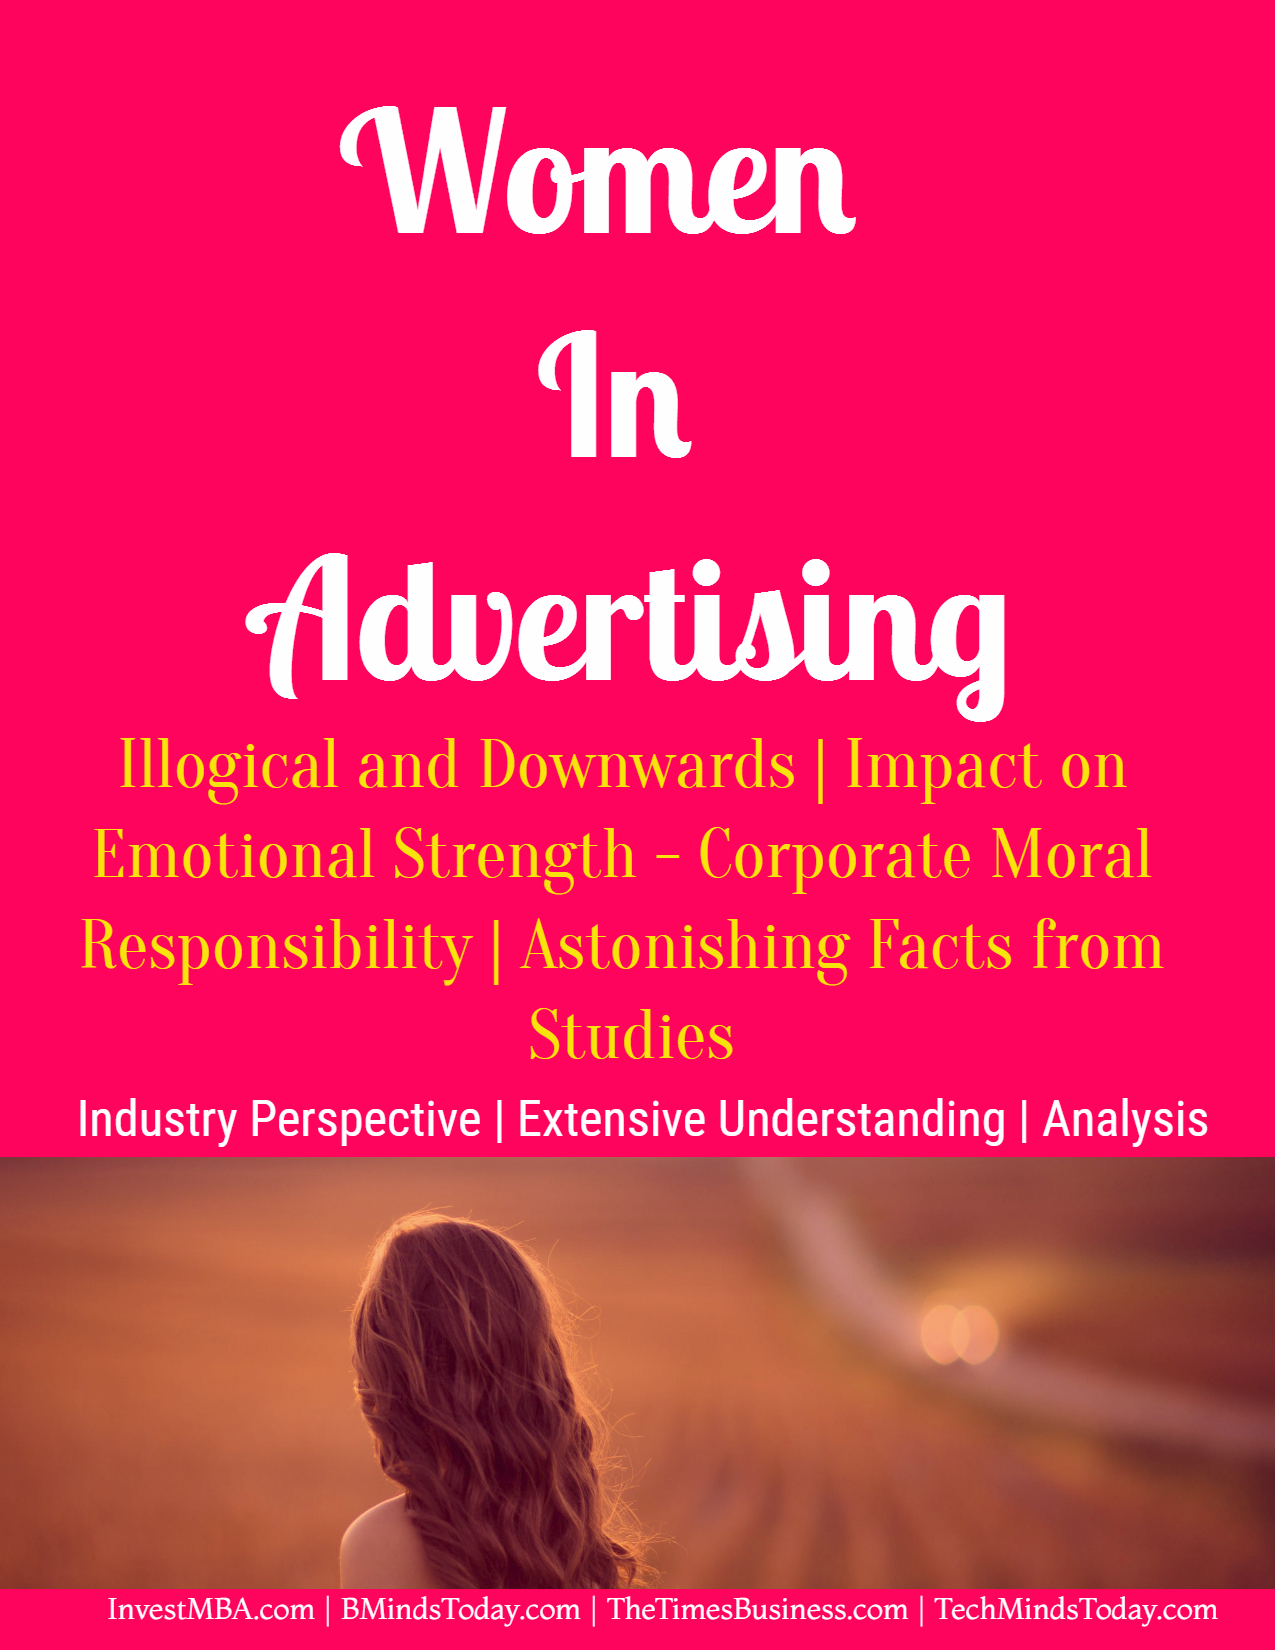 Women In Advertising Astonishing Facts From Studies Body Image women Women In Advertising | Astonishing Facts From Studies | Body Image Women In Advertising Astonishing Facts From Studies Body Image